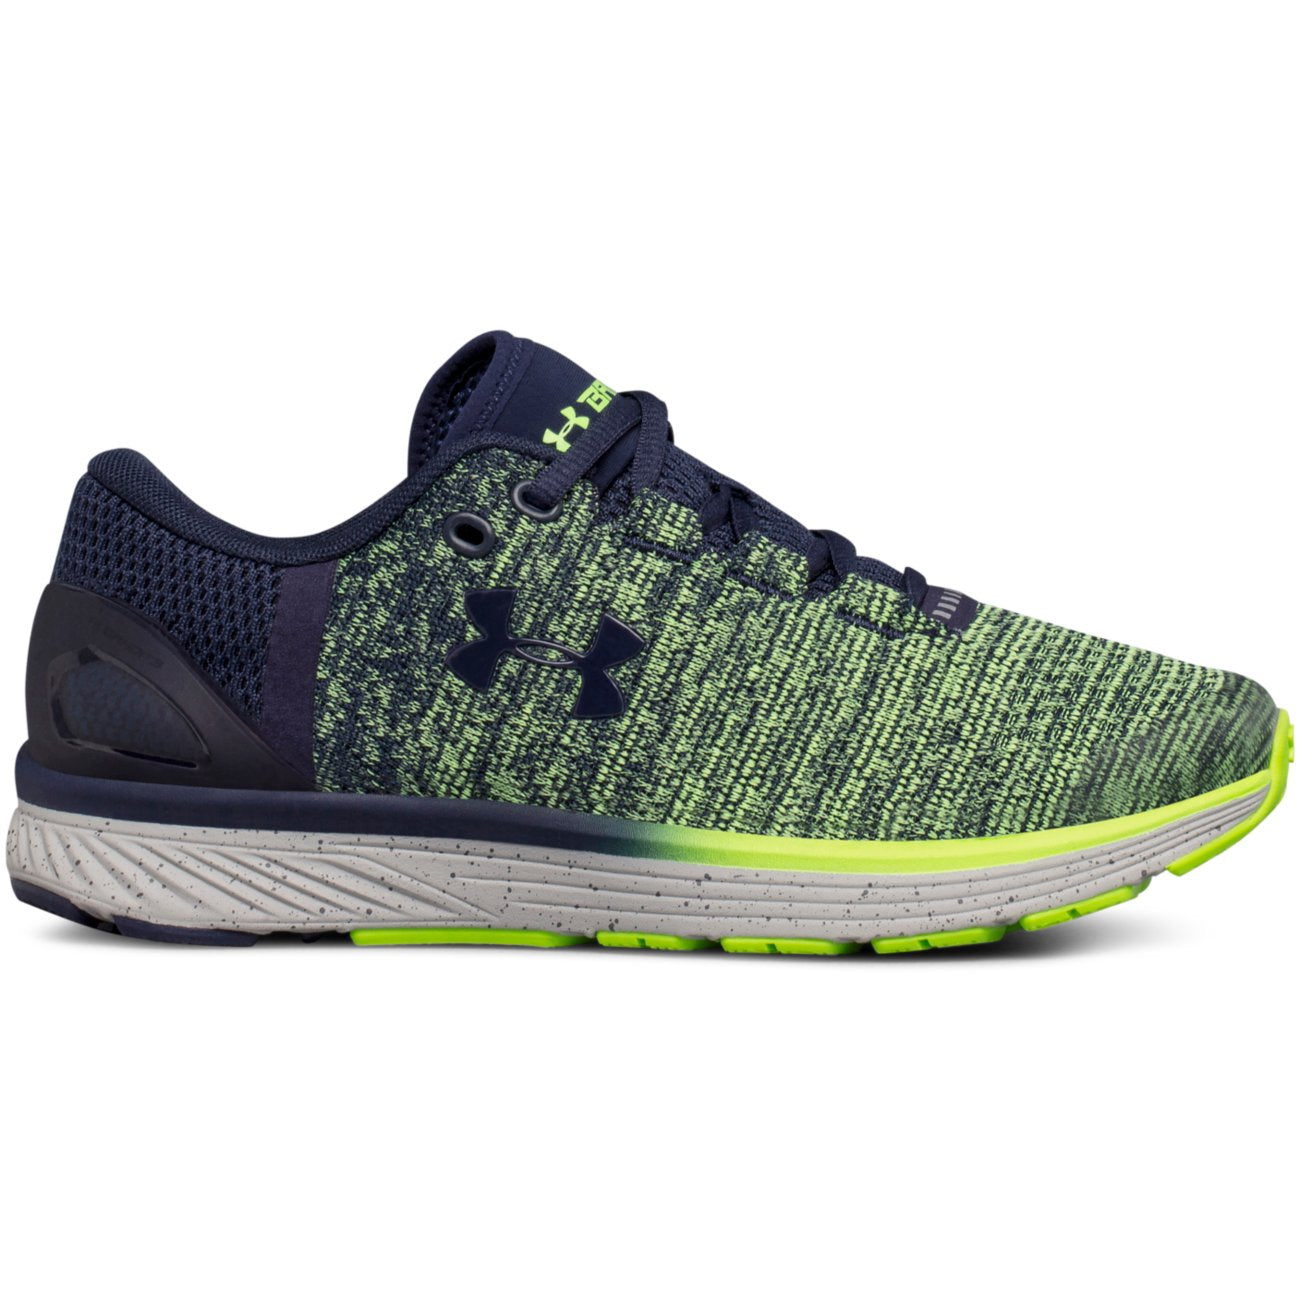 Under Armour Midnight Navy/Quirky Lime Charged Bandit Sneaker